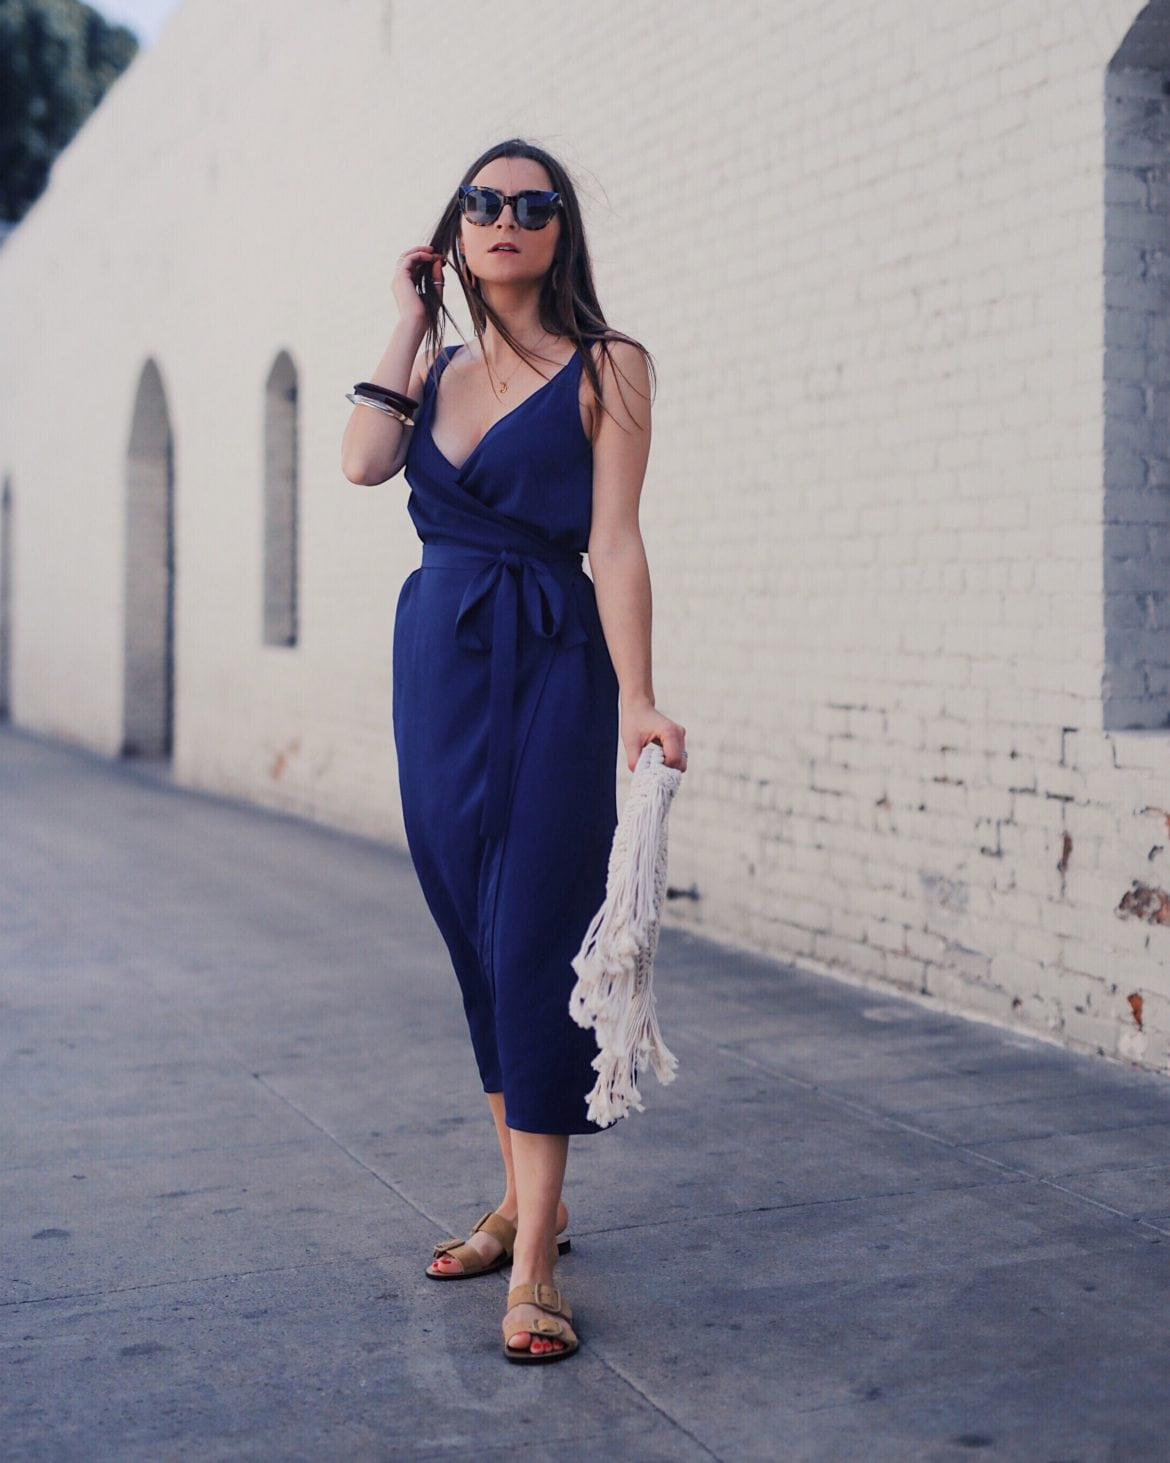 Everlane Japanese Wrap Dress - Versatile summer dresses for women: a dress to wear at work or casually - More on Houseofcomil.com